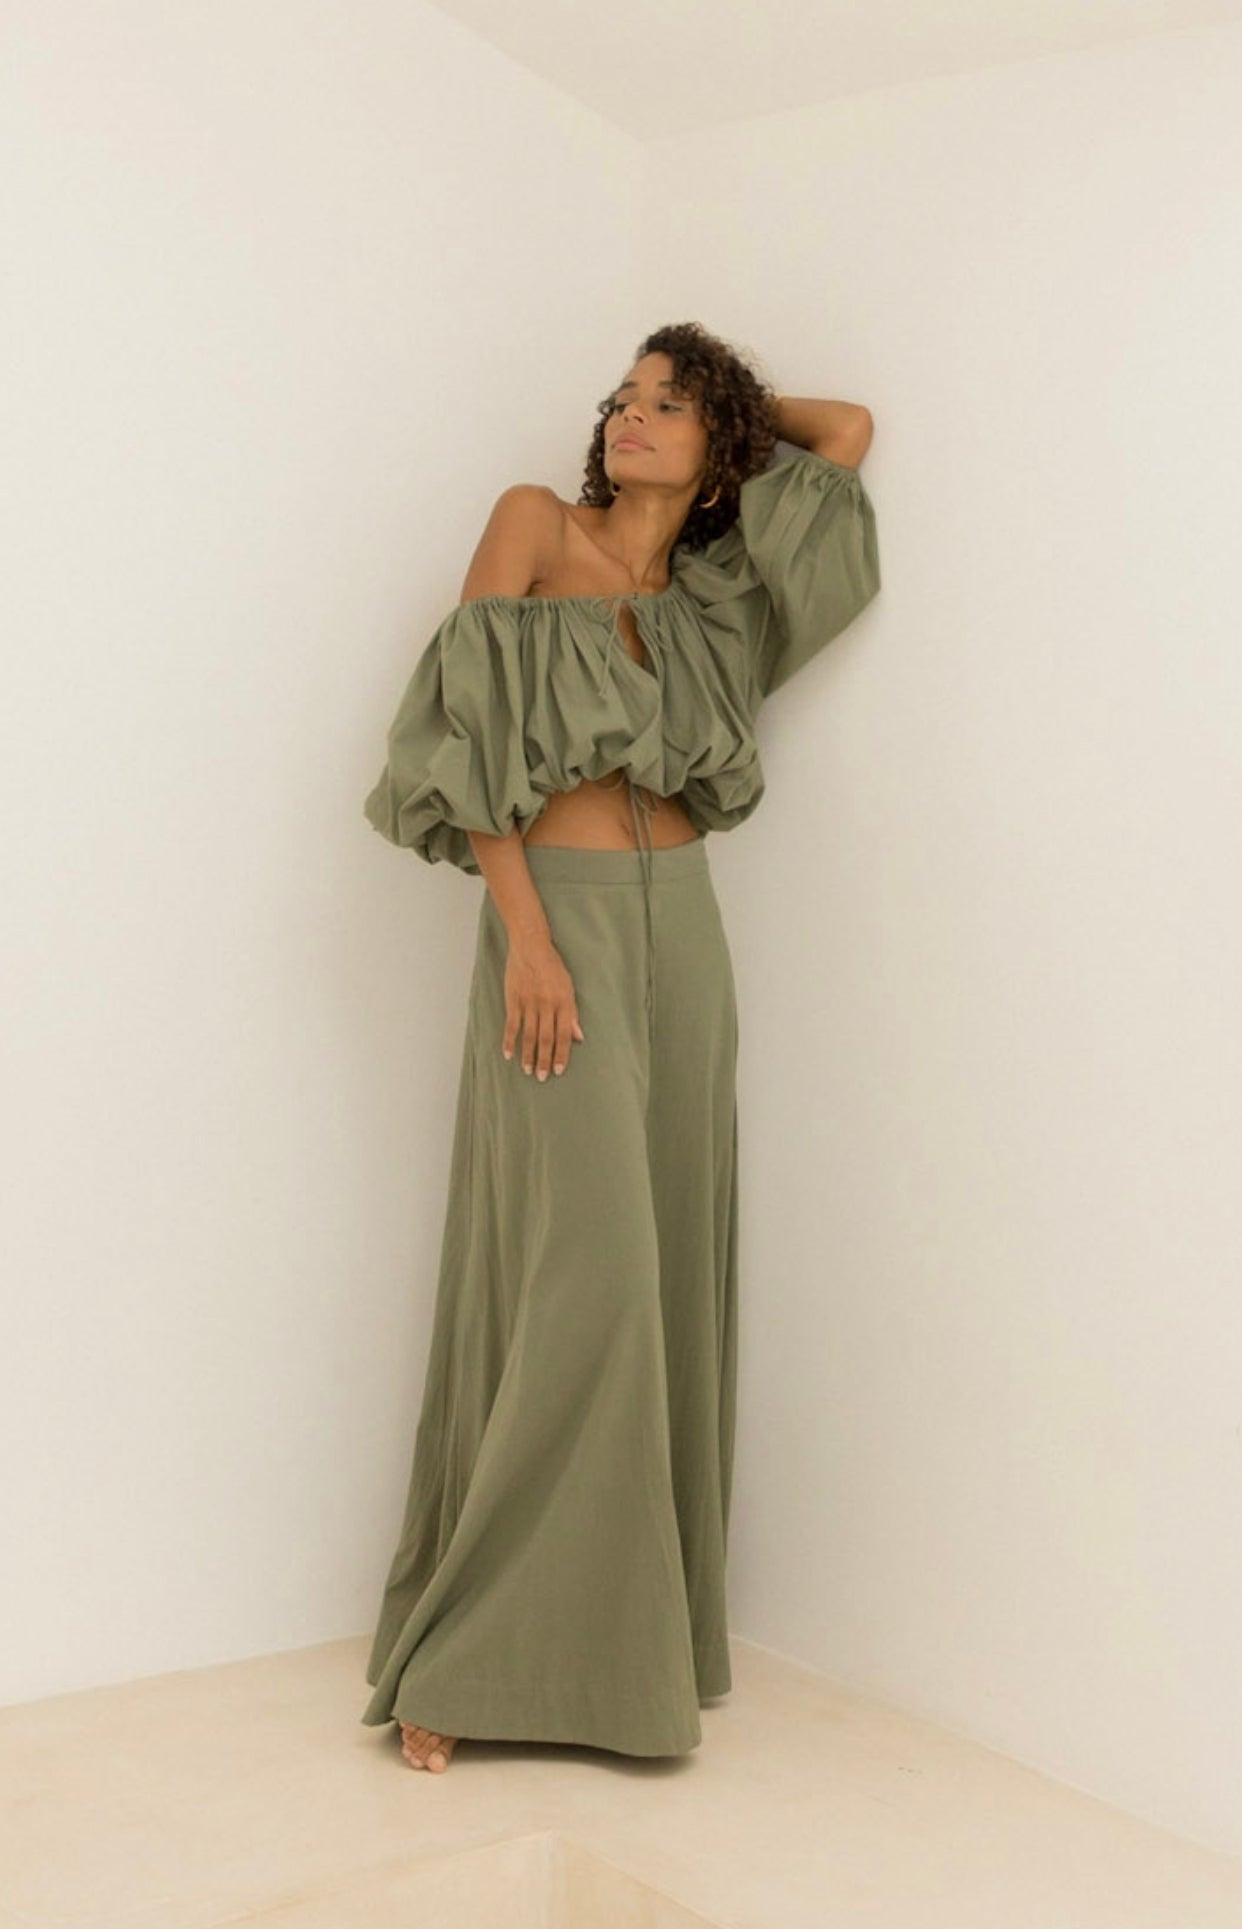 ÉSS THE LABEL Chloe Maxi Skirt - Khaki